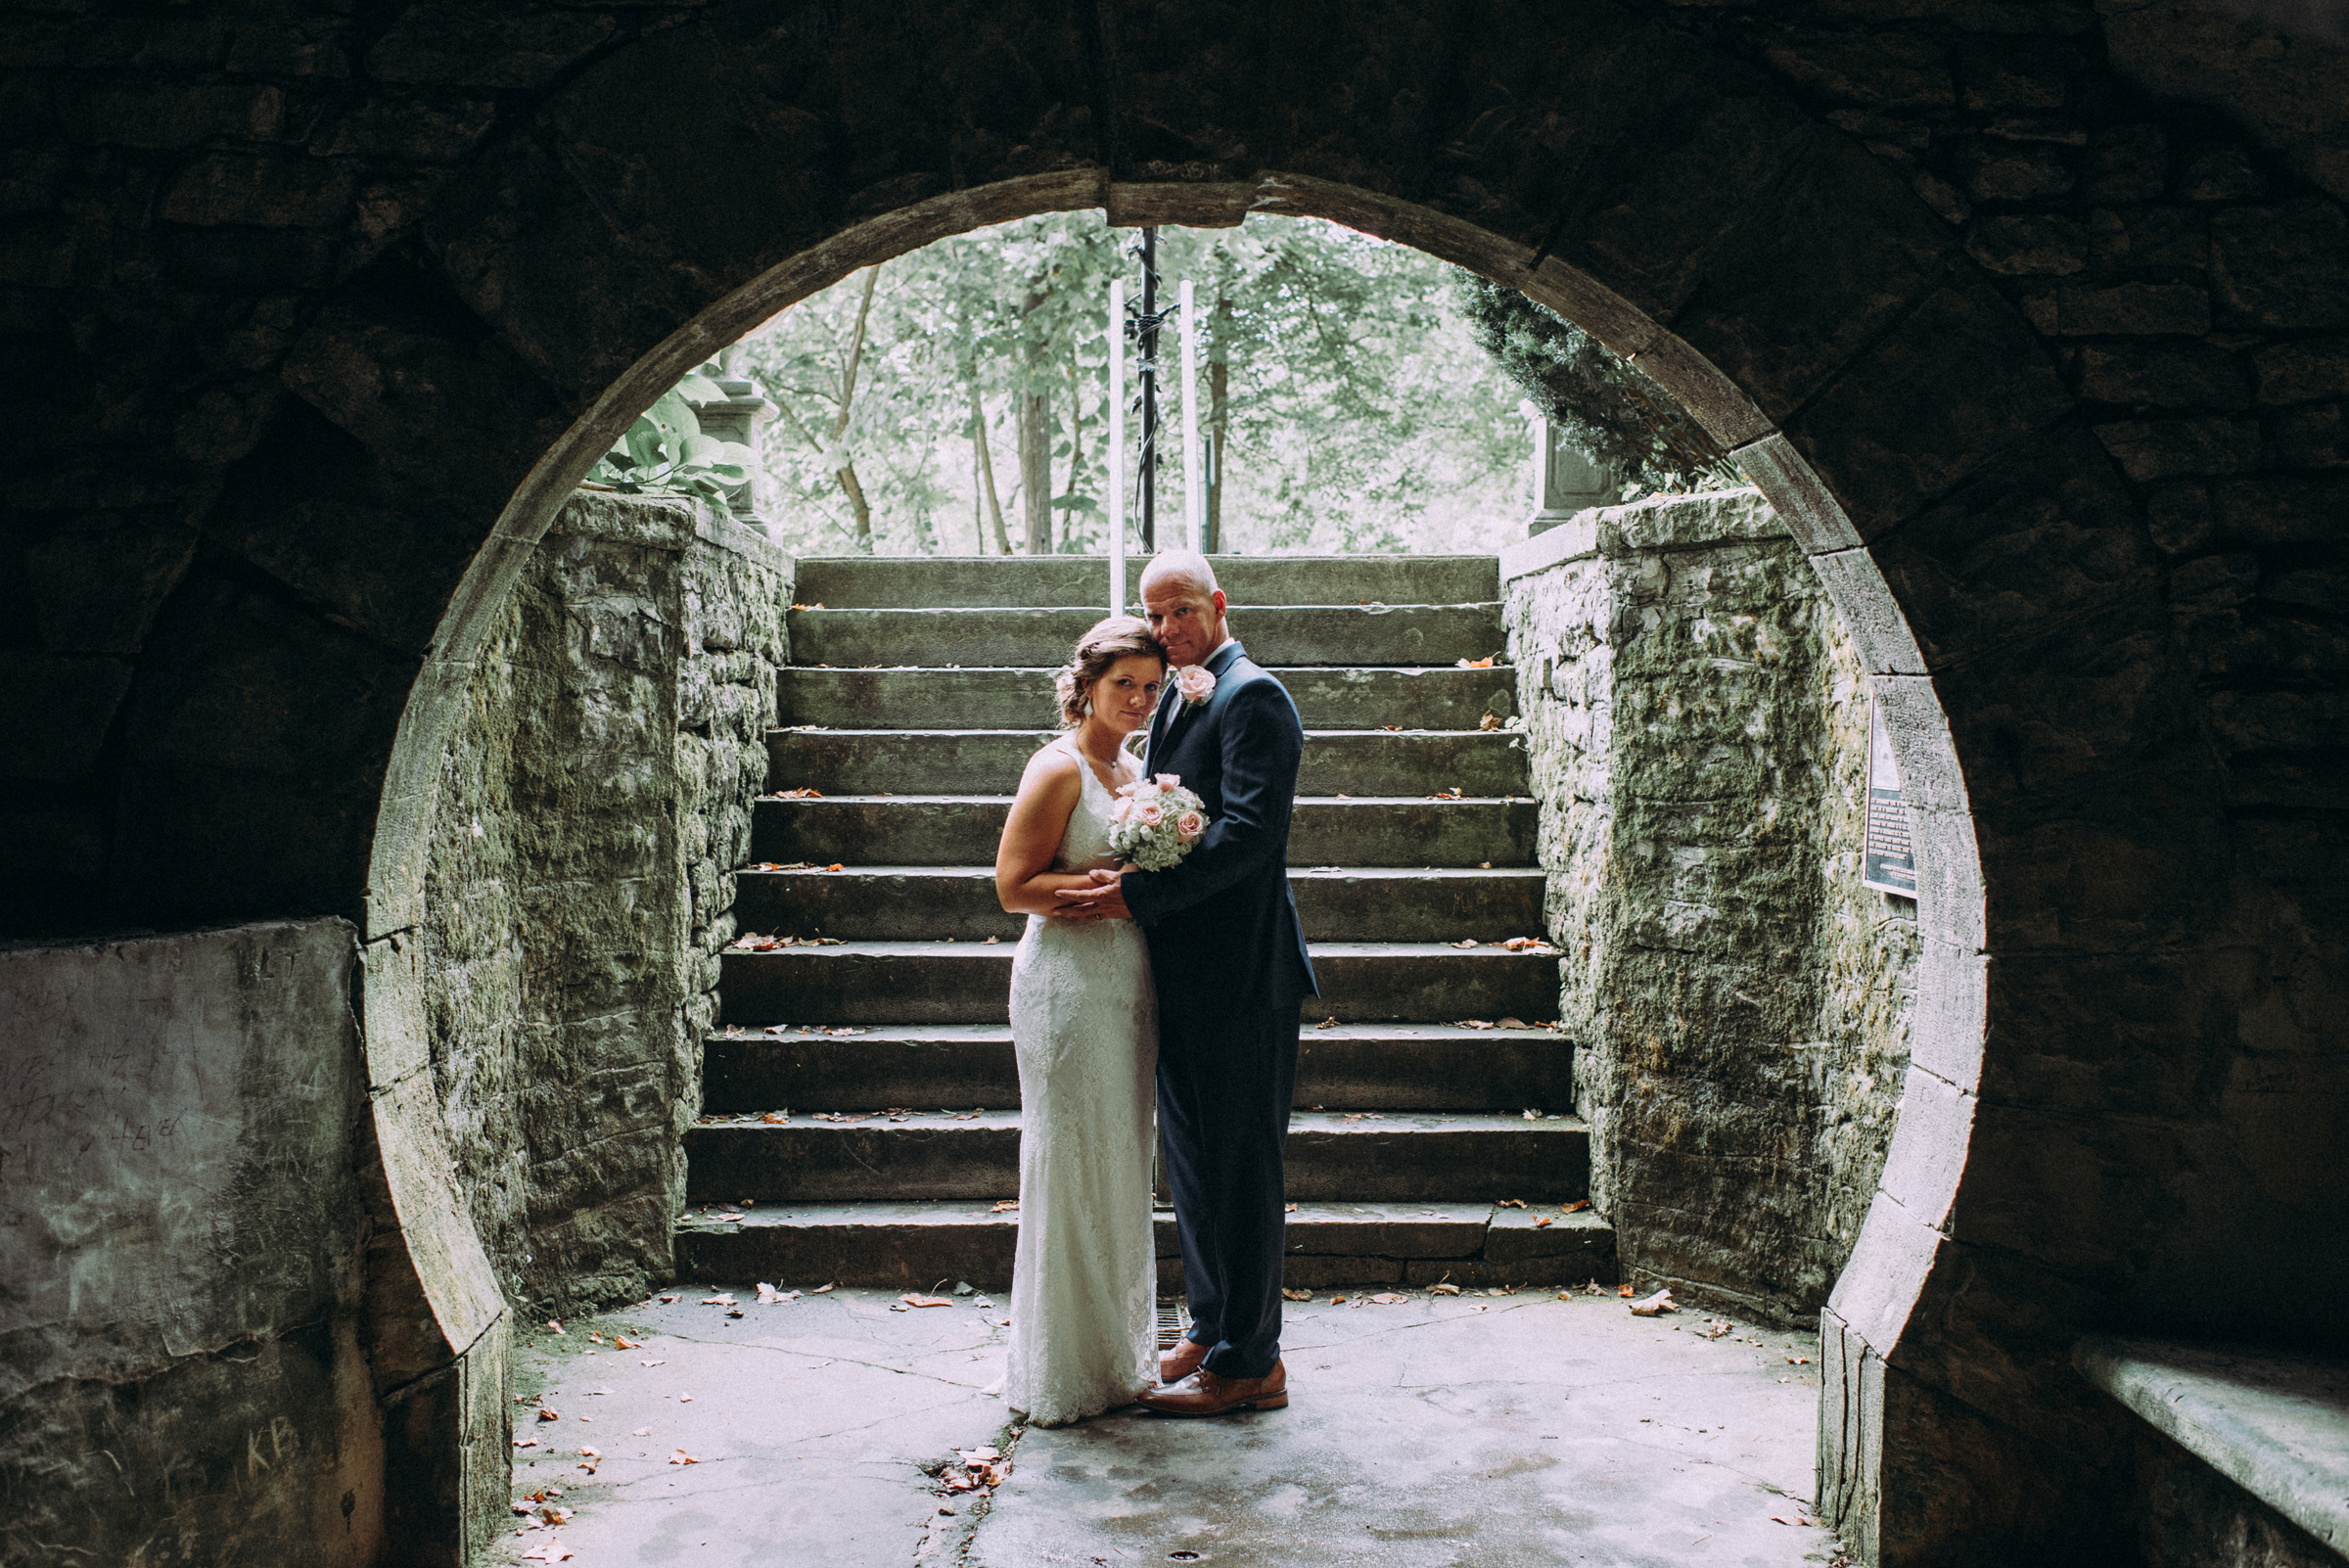 Bride and Groom inside grotto spring